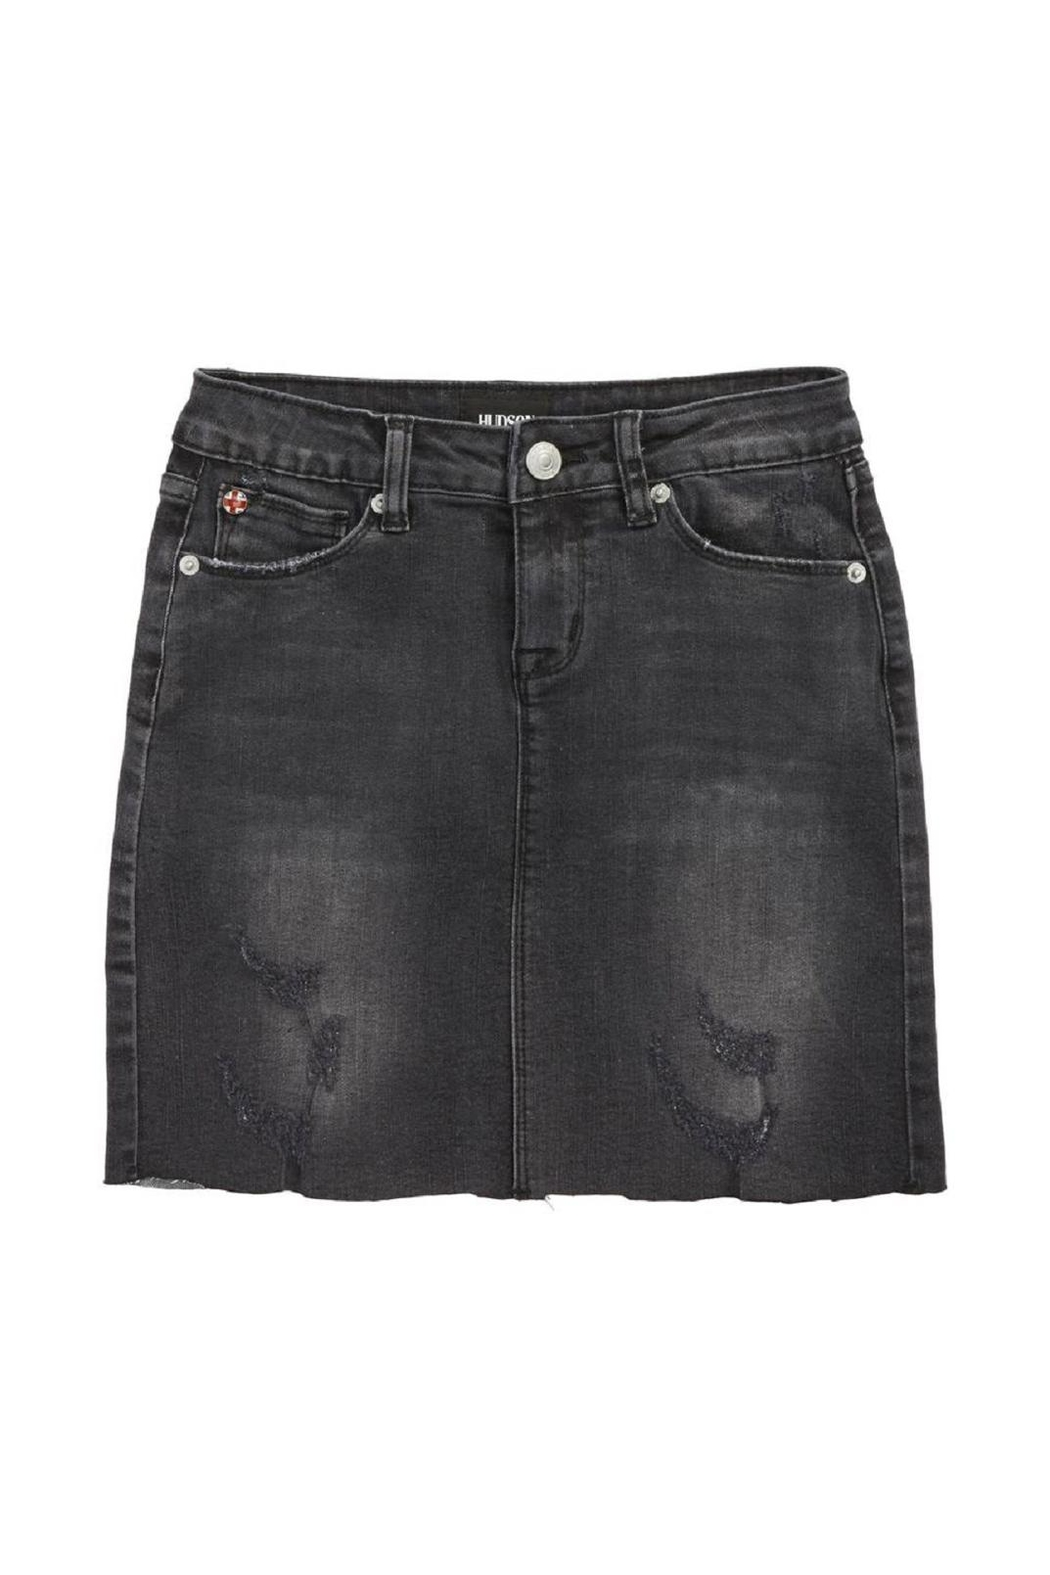 Hudson Jeans Denim Mini Skirt - Main Image